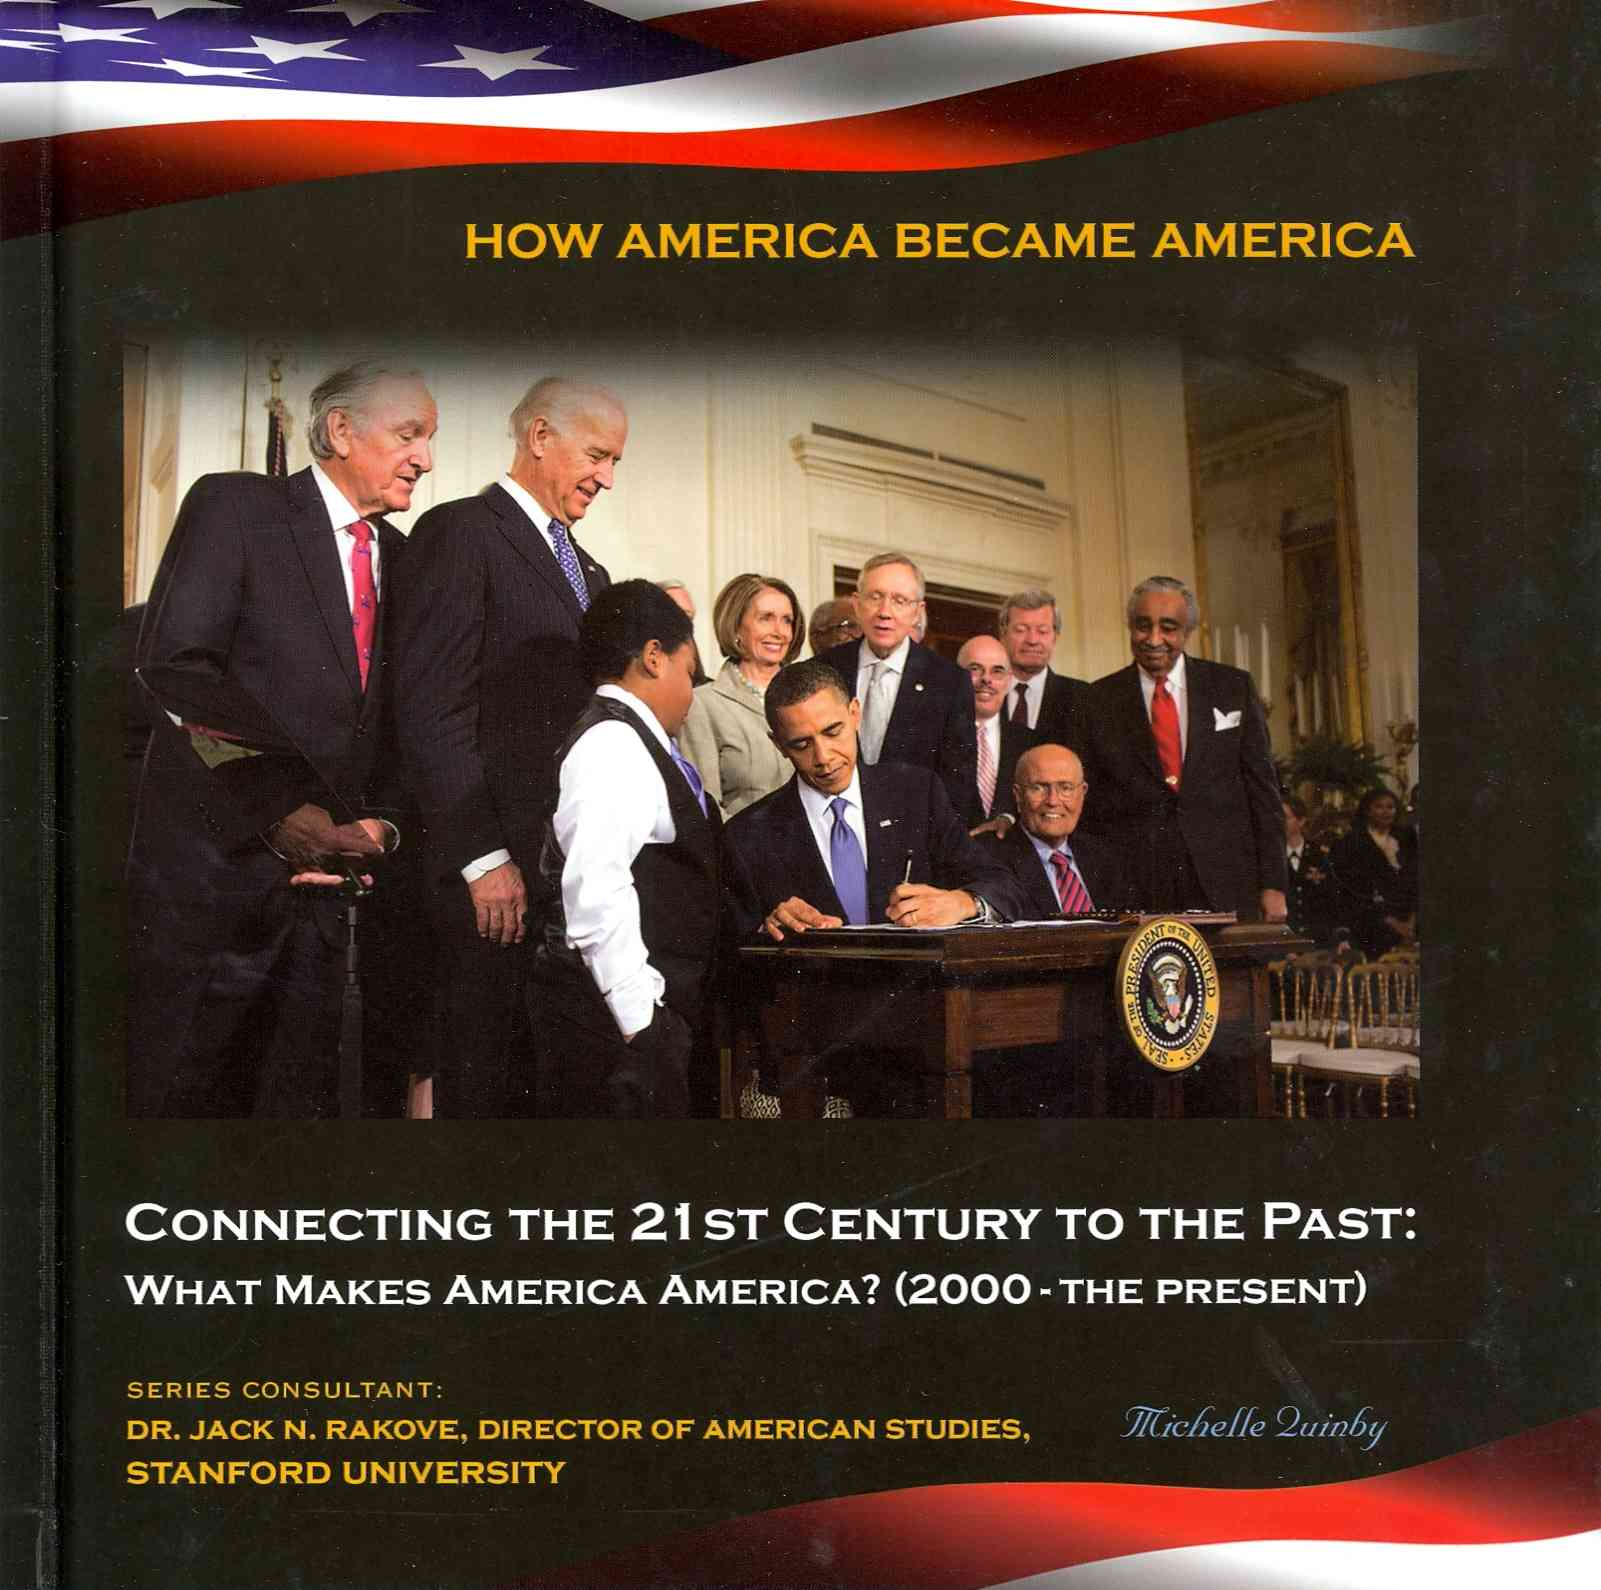 Connecting the 21st Century to the Past By Quinby, Michelle